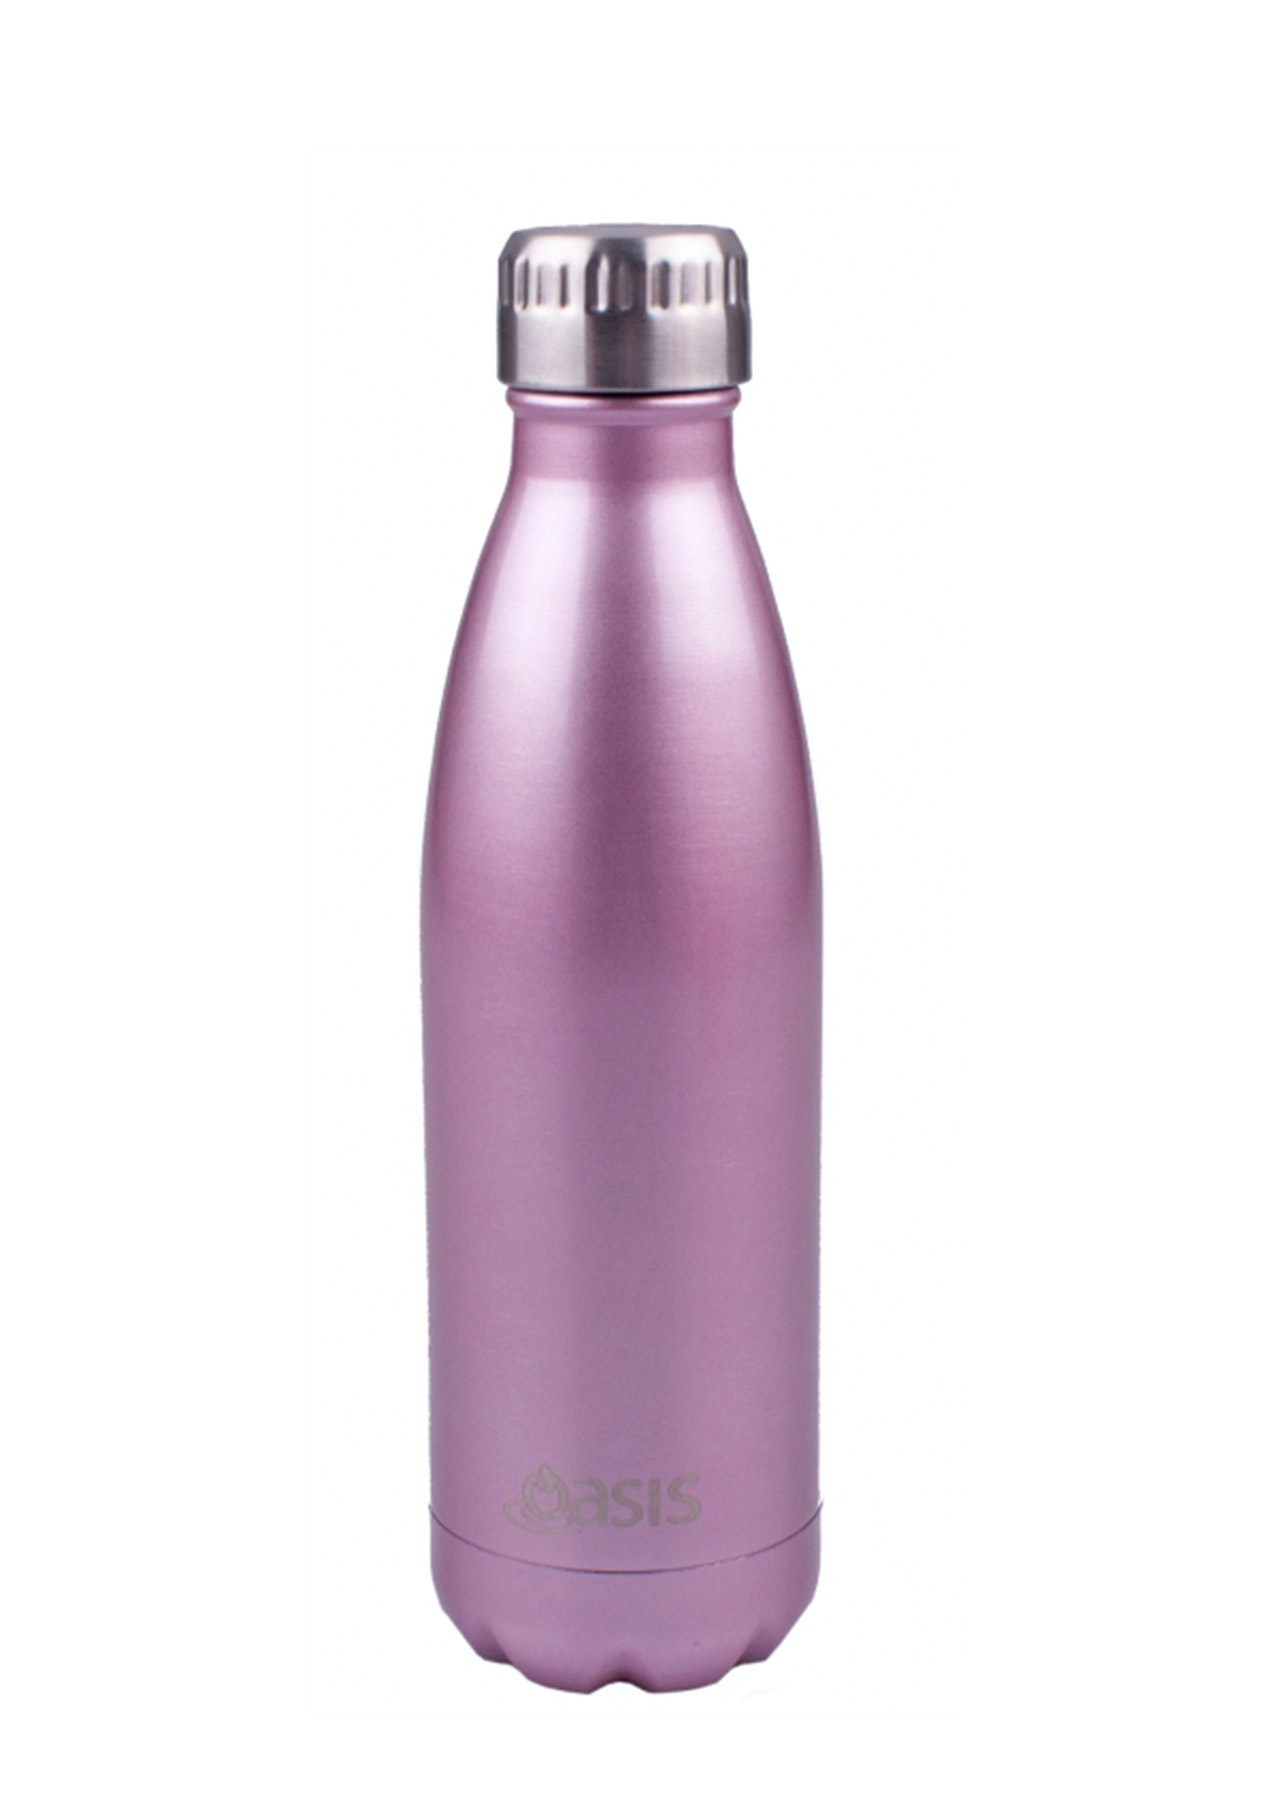 Oasis - Insulated Drink Bottle 500ml - Blush